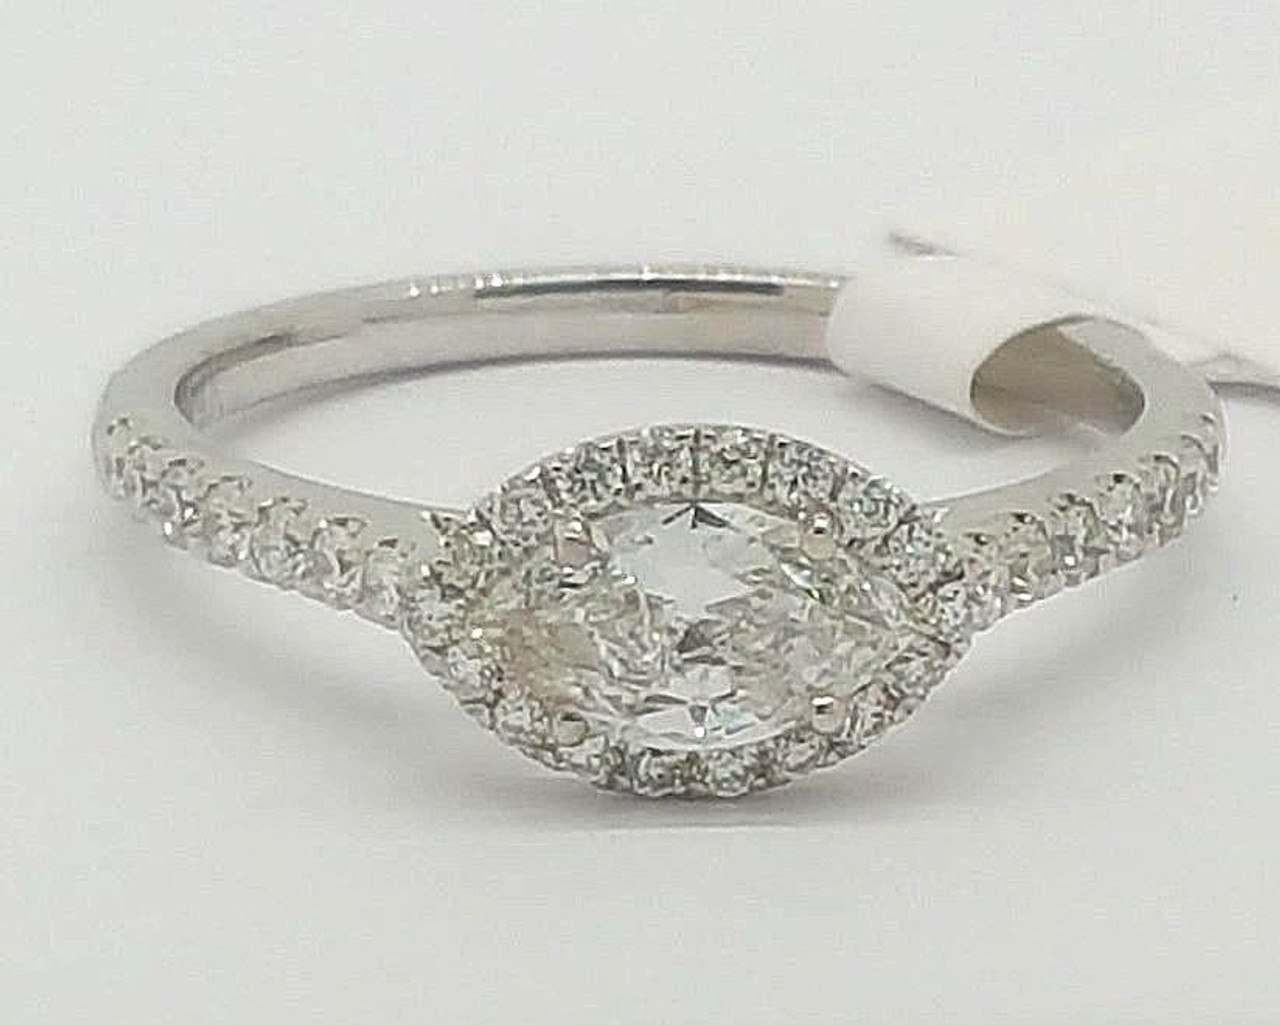 Fine Rings 0.83ct Round Diamond Engagement Wedding Band Solid 14k Solid White Gold Jewelry & Watches